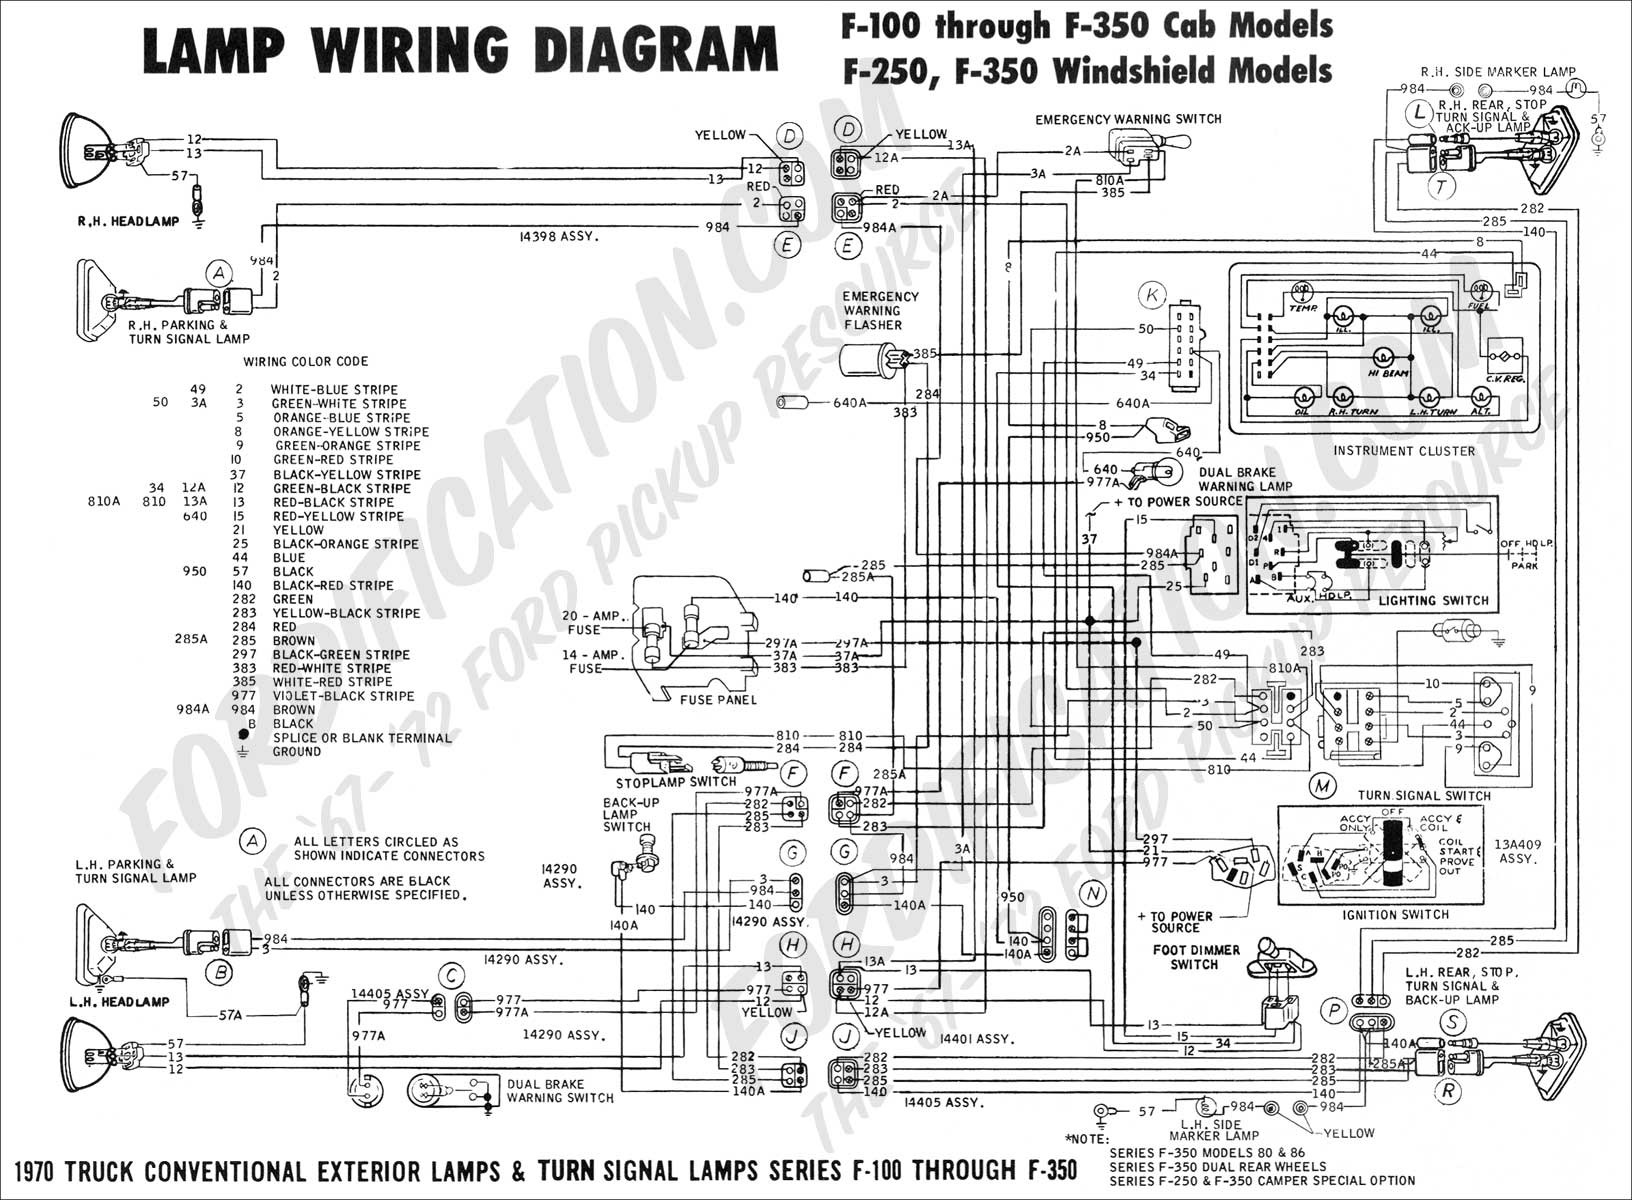 99 f350 trailer wiring 99 image wiring diagram ford f 250 trailer wiring harness ford auto wiring diagram schematic on 99 f350 trailer wiring